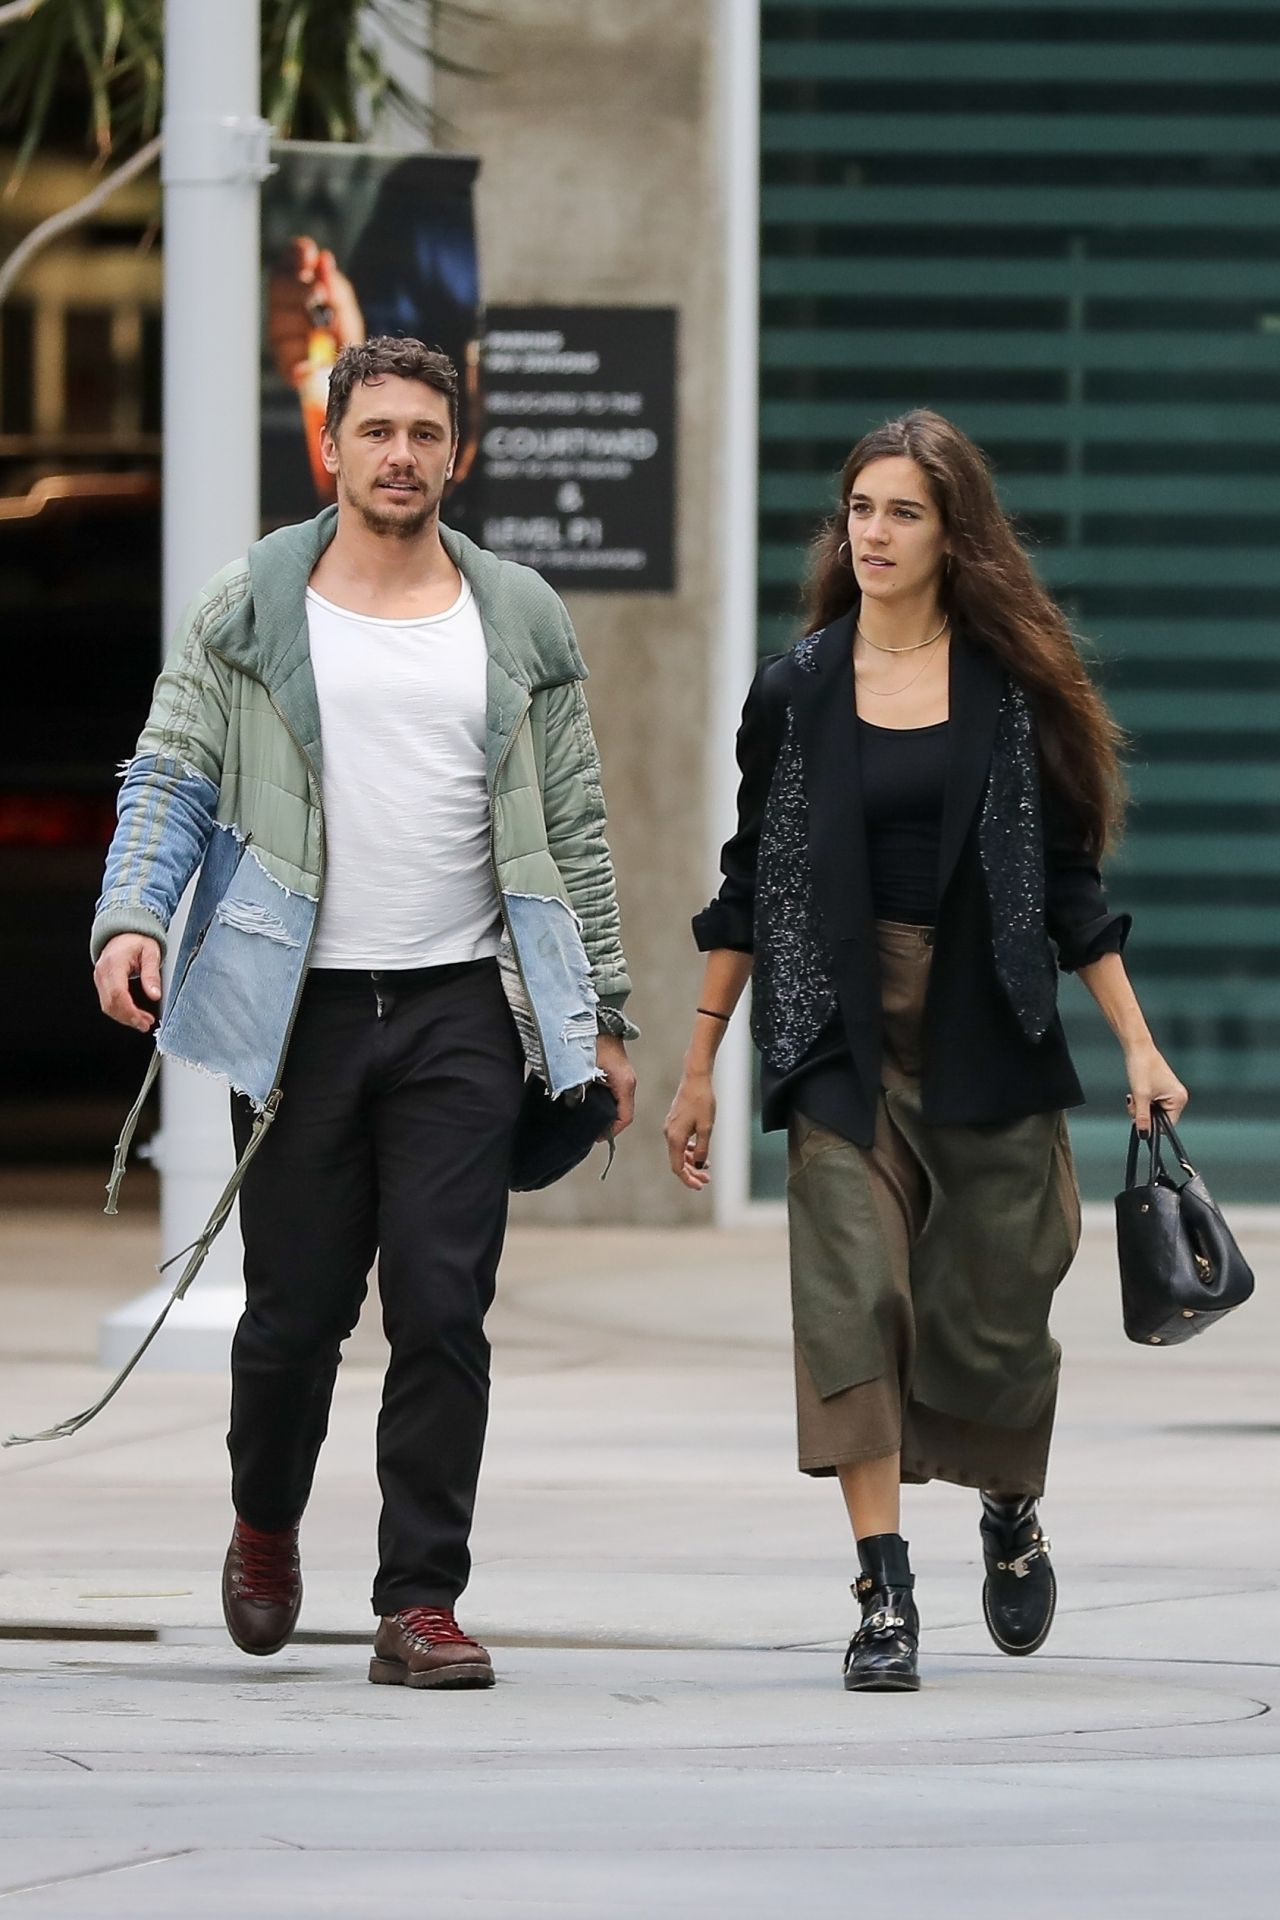 Isabel Pakzad and James Franco  Out in LA 01122019